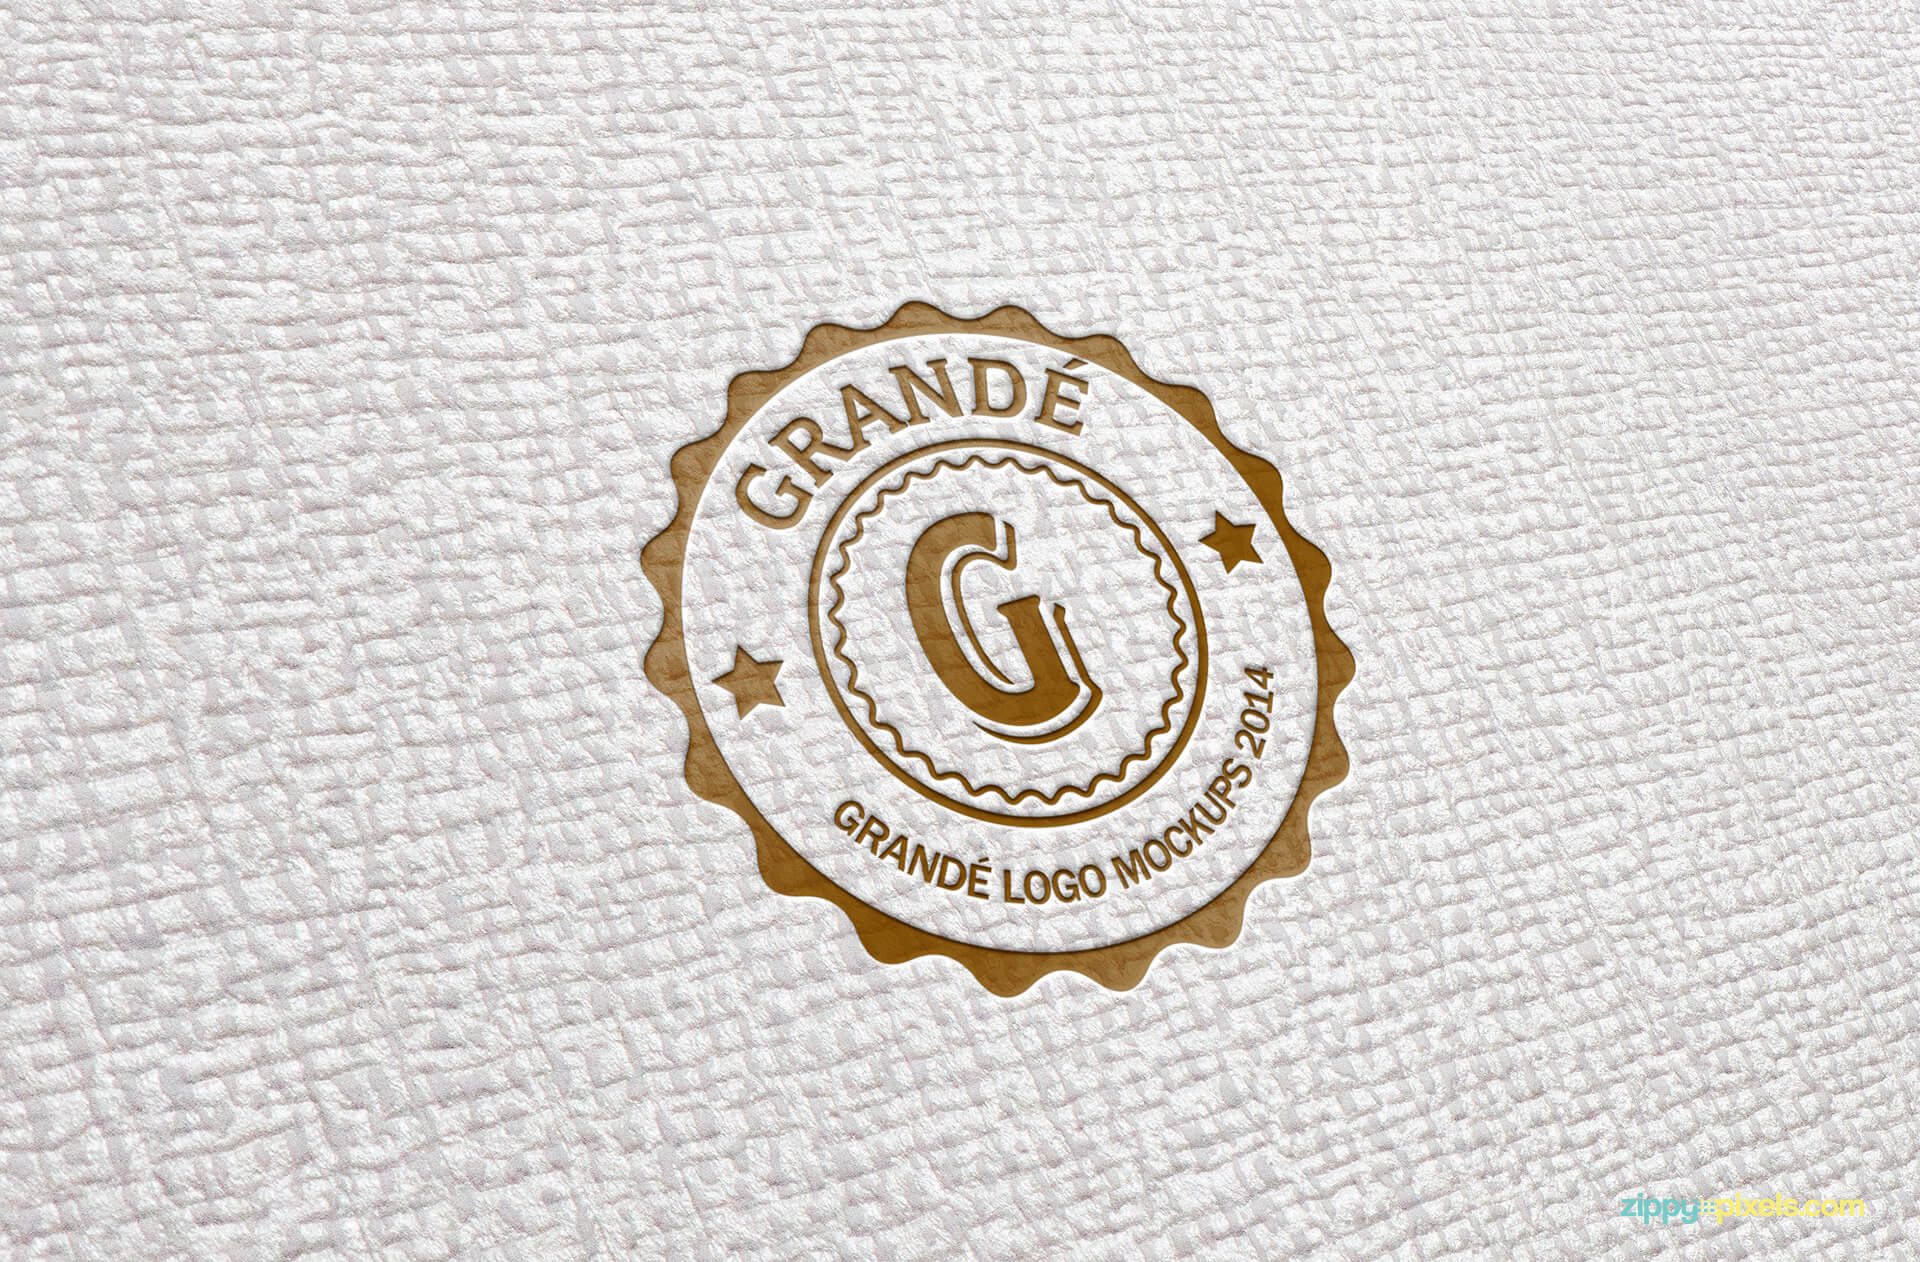 PSD Mockup of Letterpressed Logo on Textured Paper